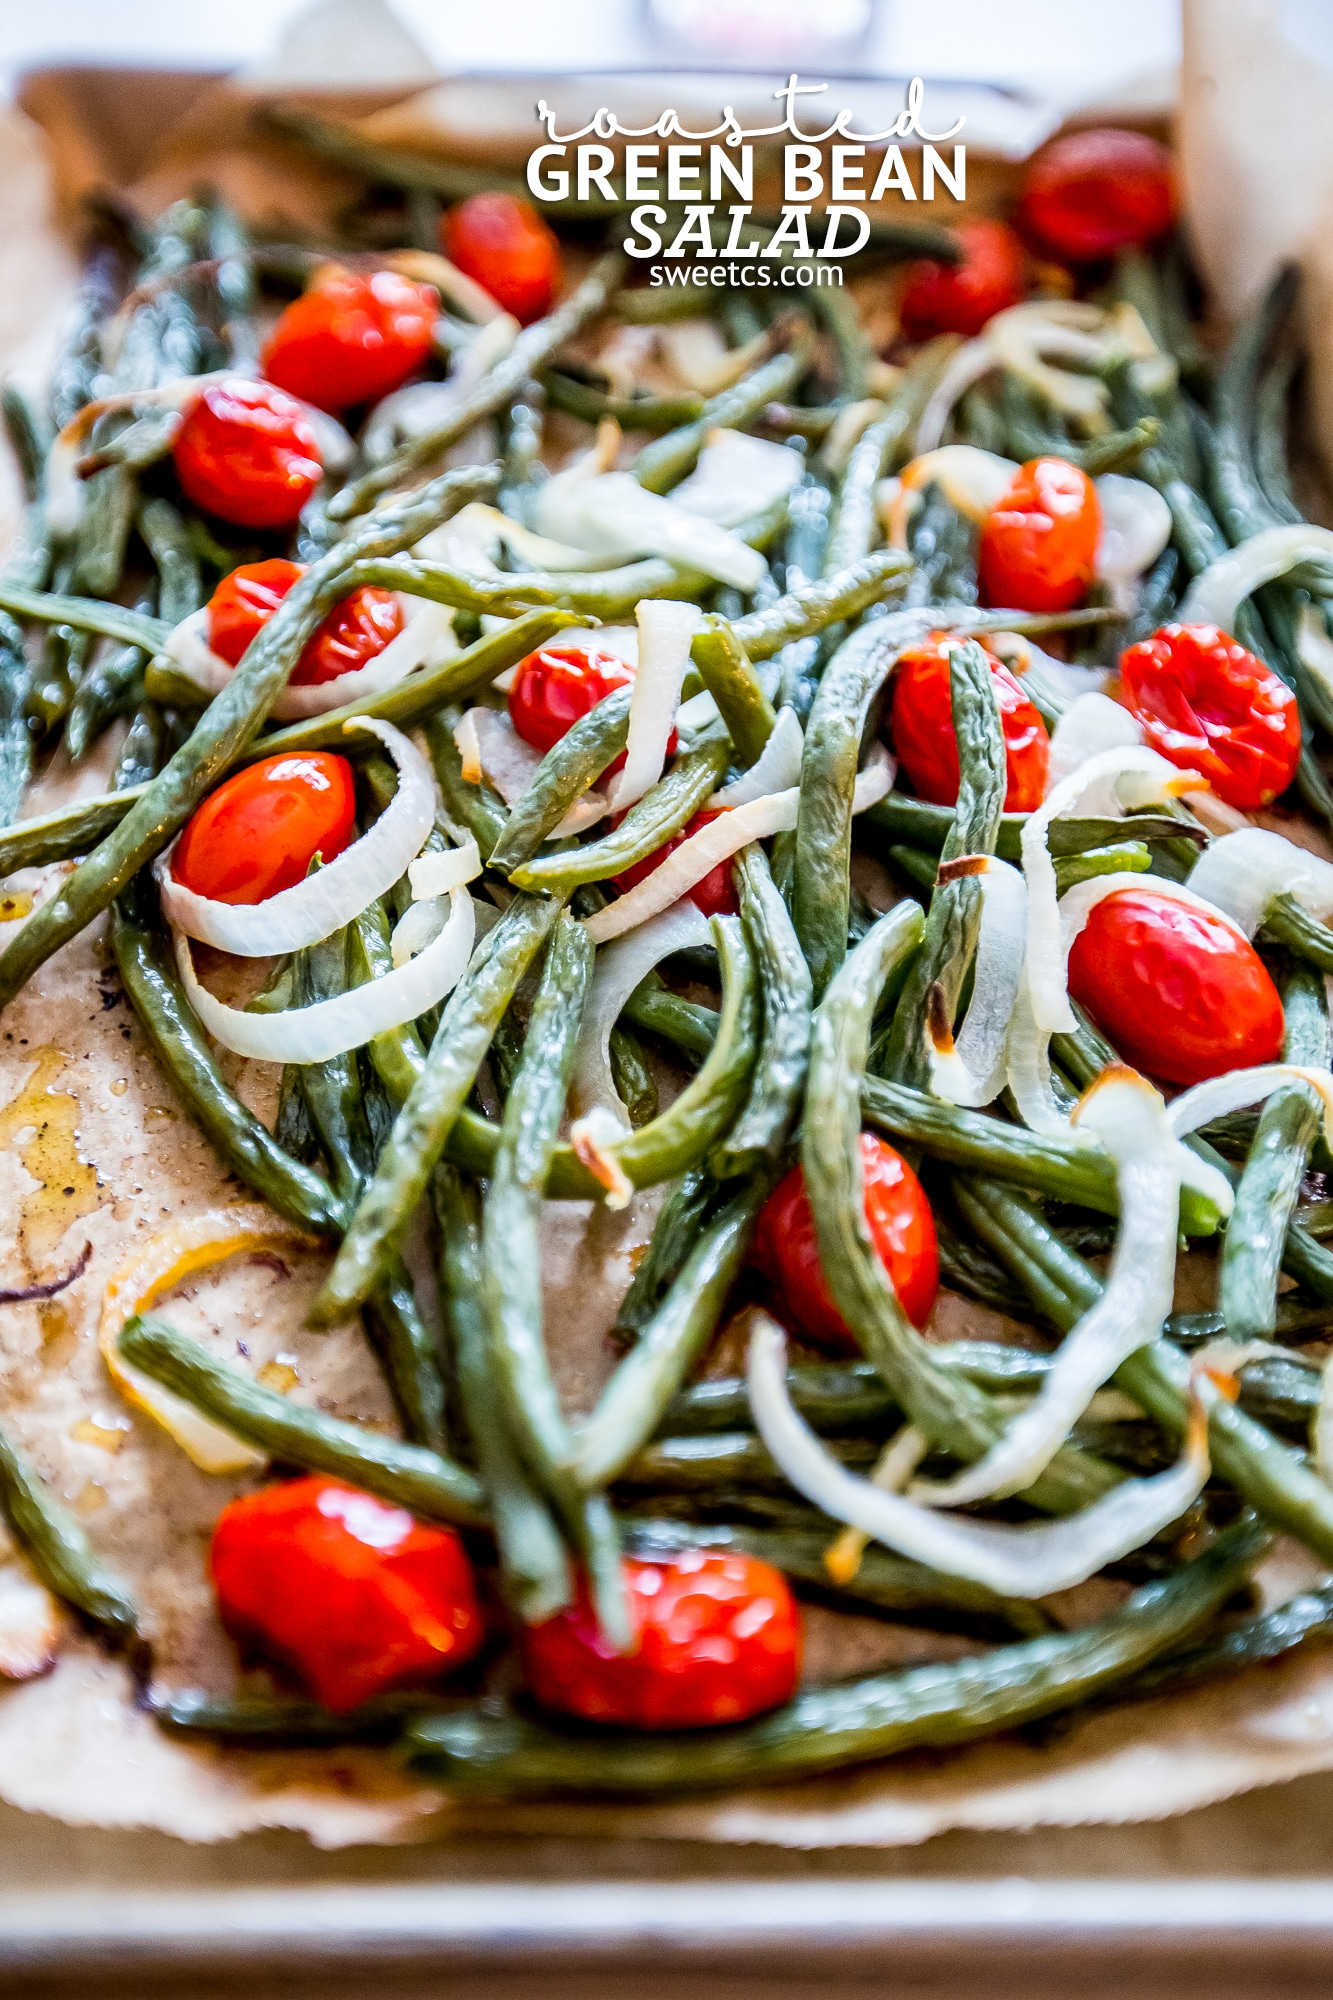 This is such a delicious and easy side dish- this roasted green bean salad is so good!